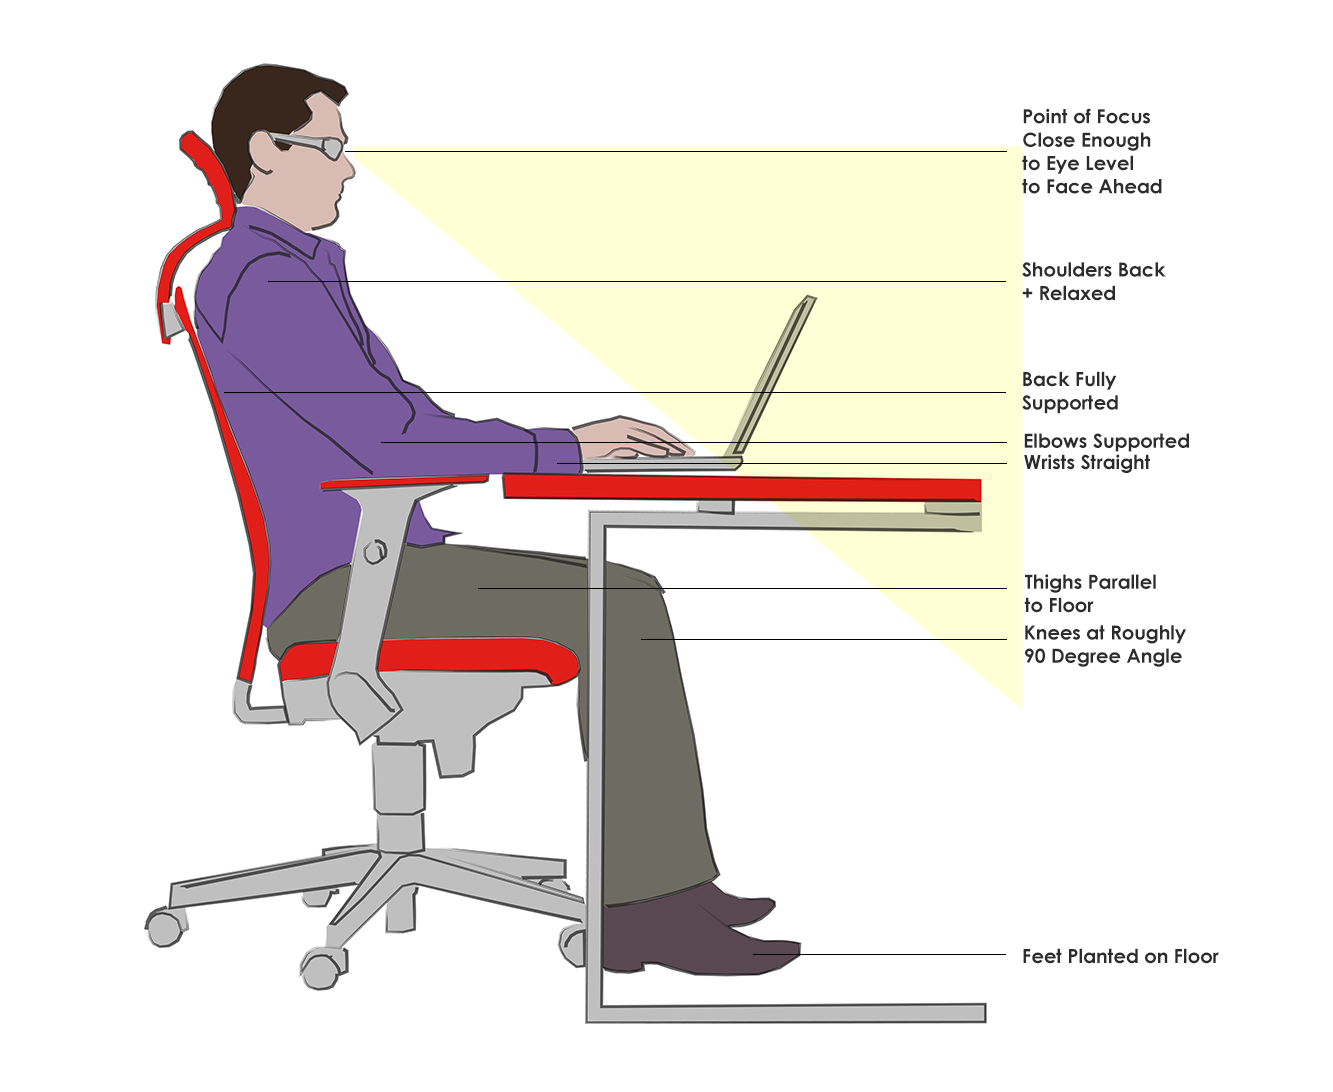 Example of Good Ergonomic Positioning